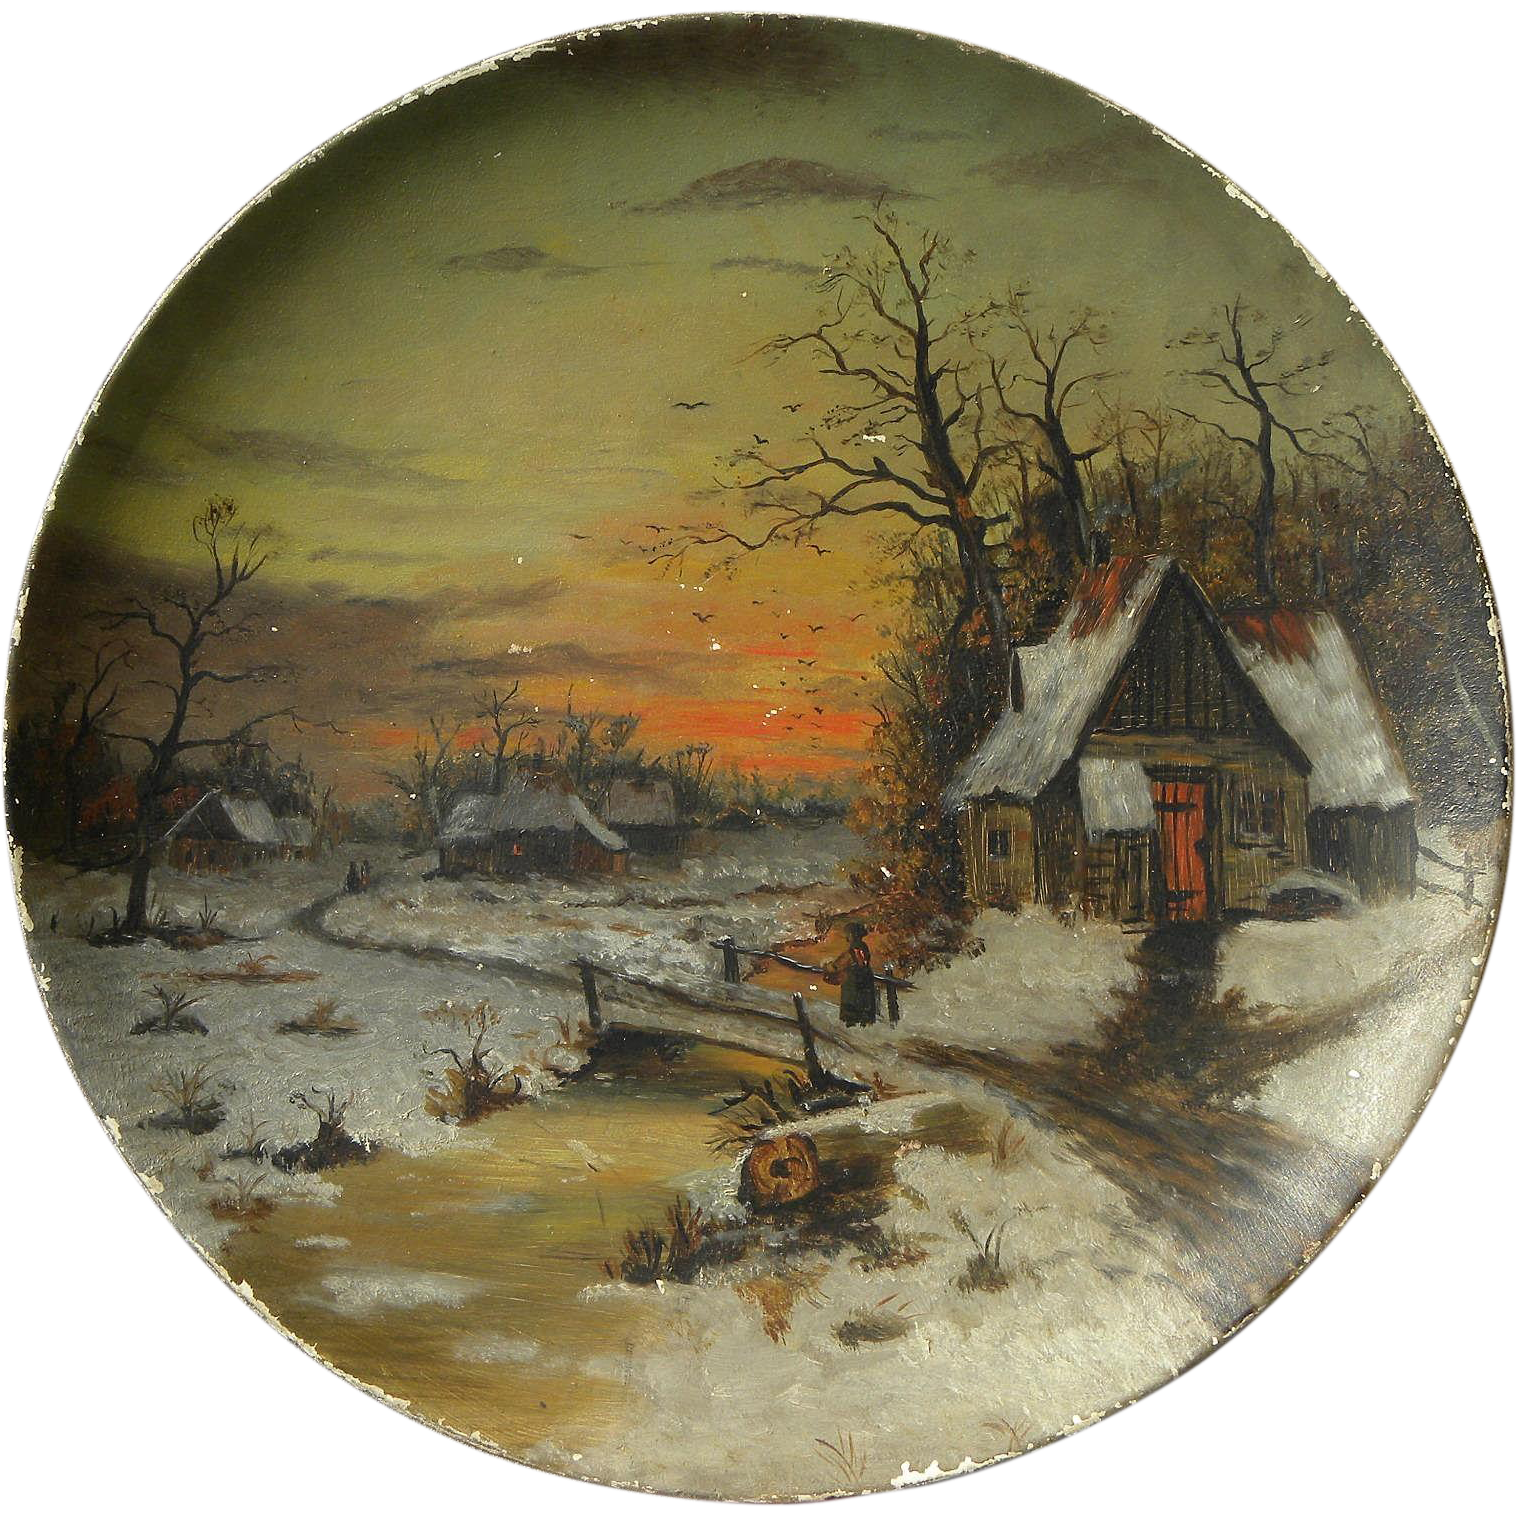 American 19th century landscape painting on round papier mache style platter